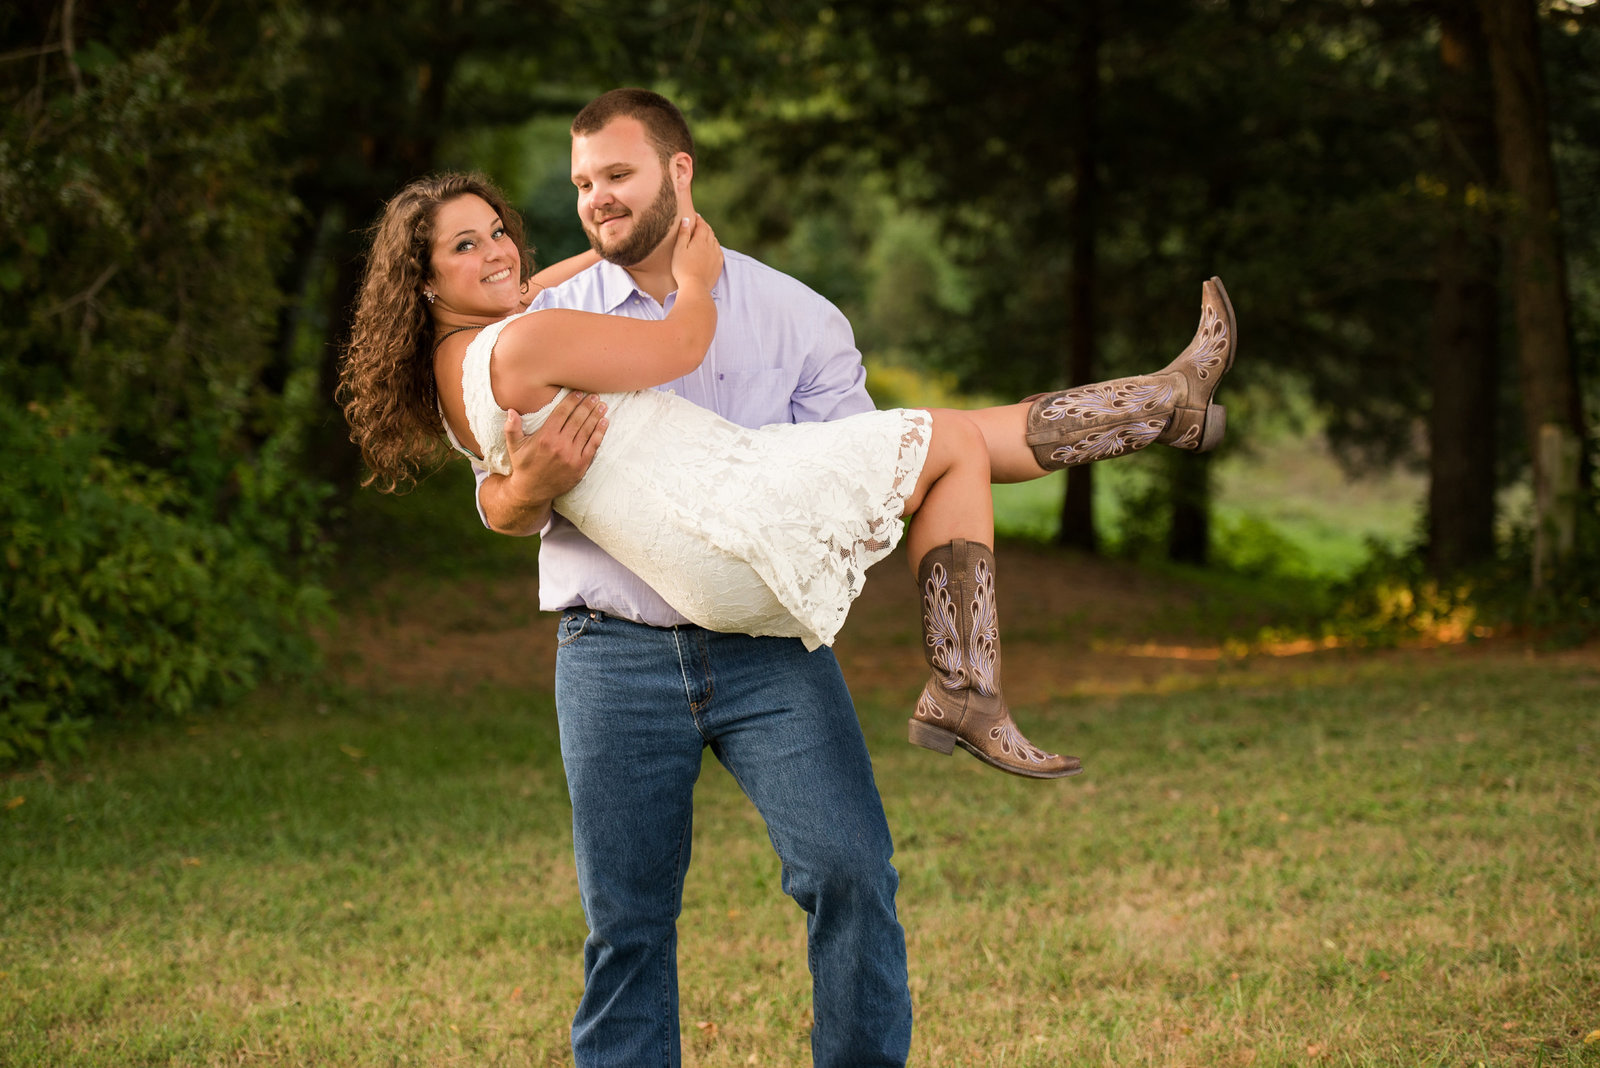 NJ_Rustic_Engagement_Photography139